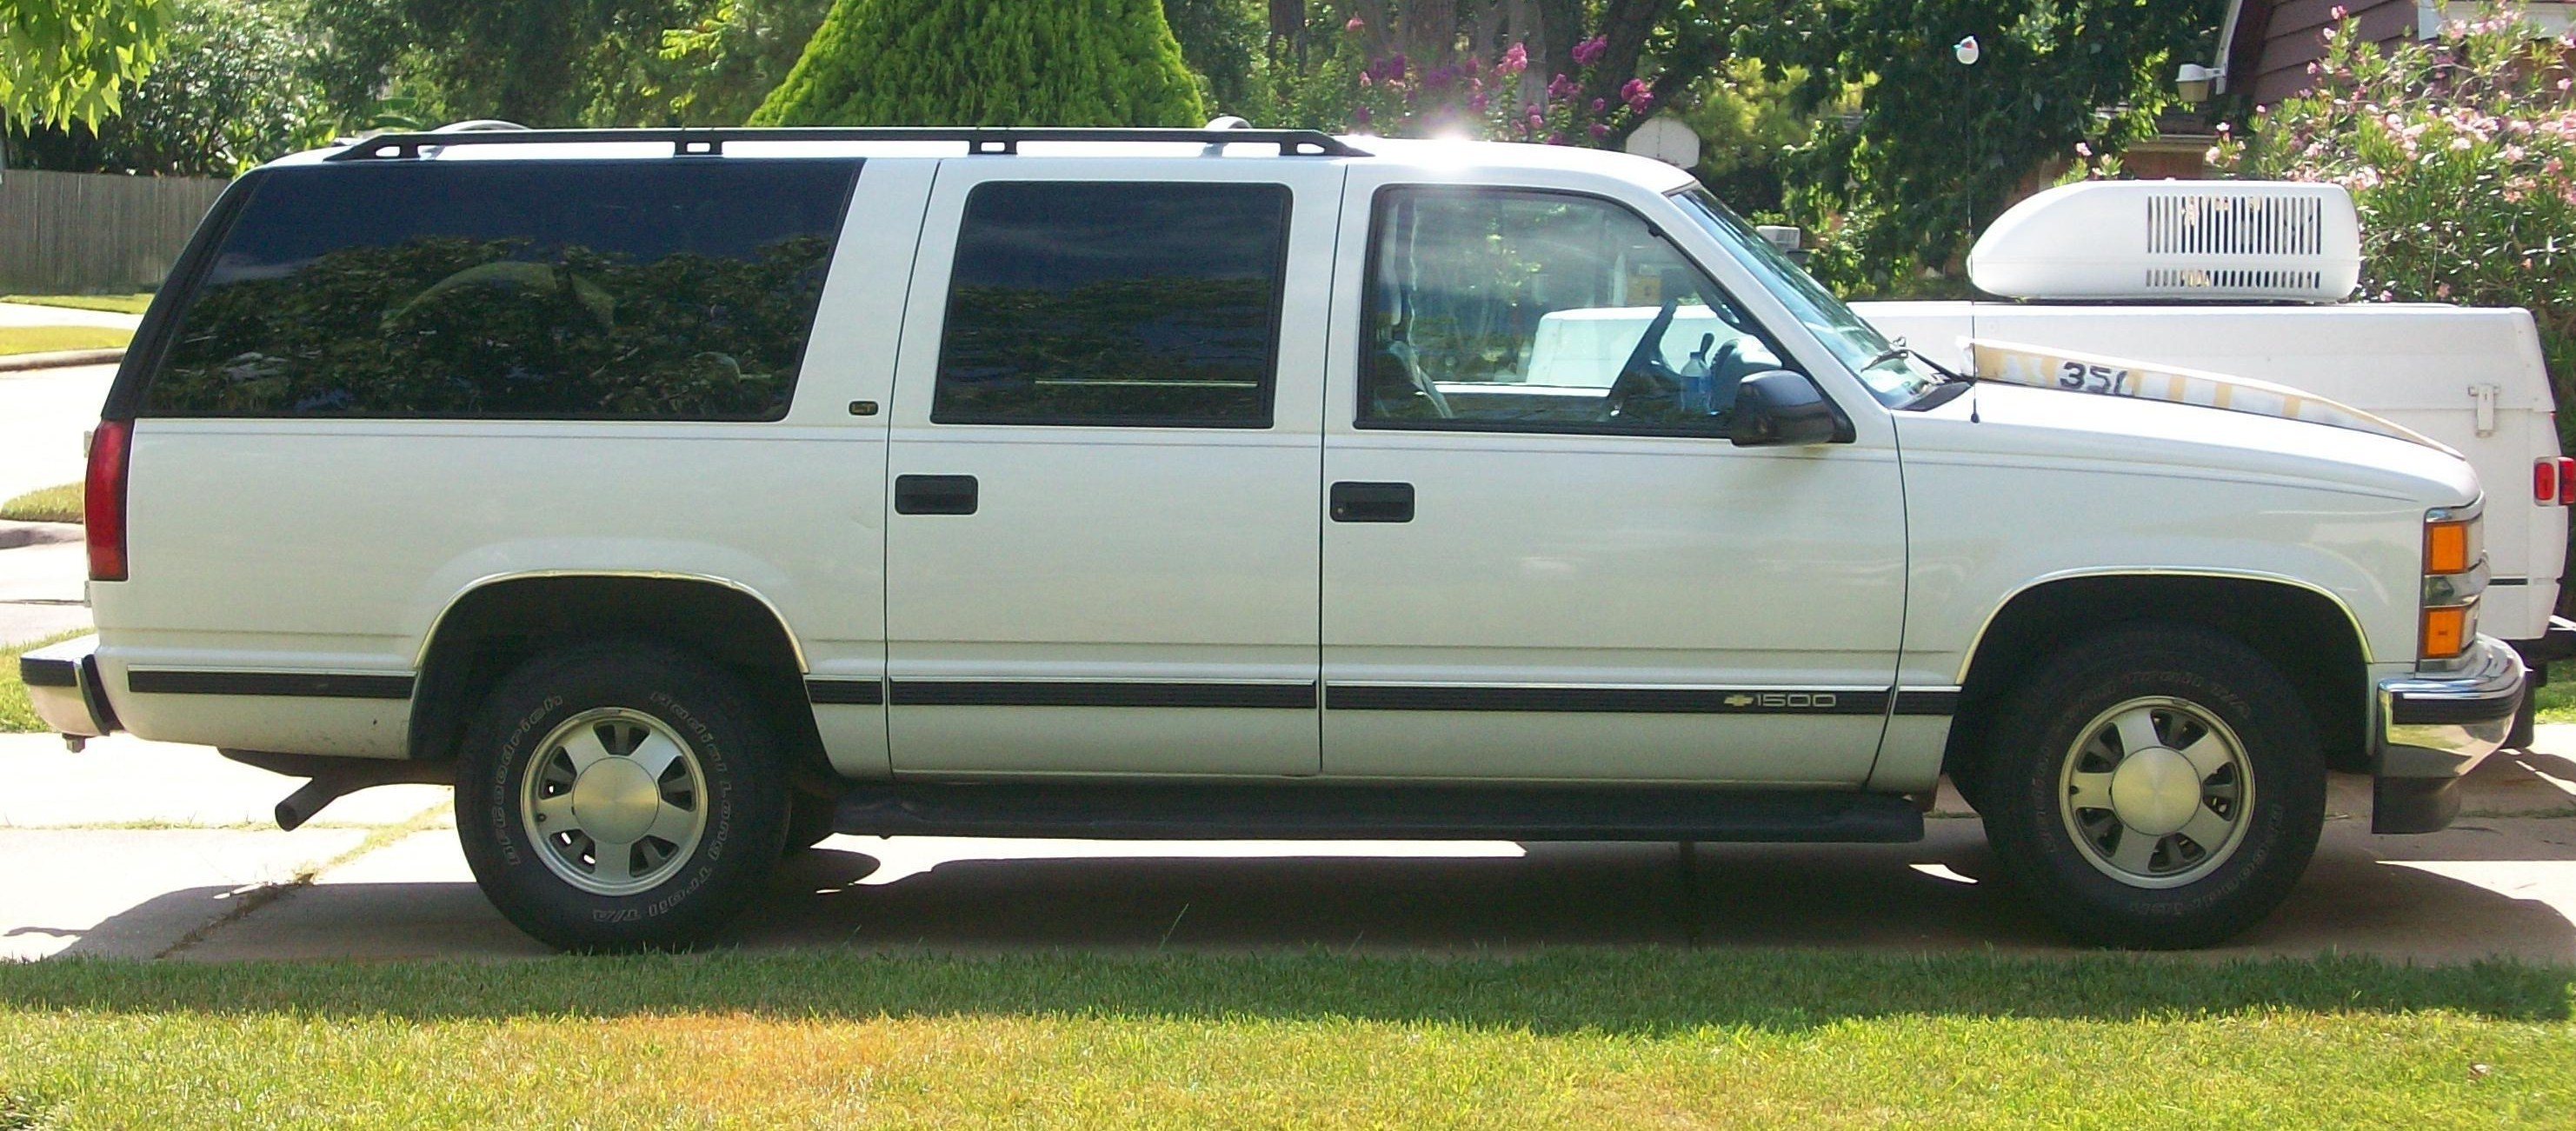 99 burb 1999 chevrolet suburban 1500 specs photos modification info at cardomain. Black Bedroom Furniture Sets. Home Design Ideas